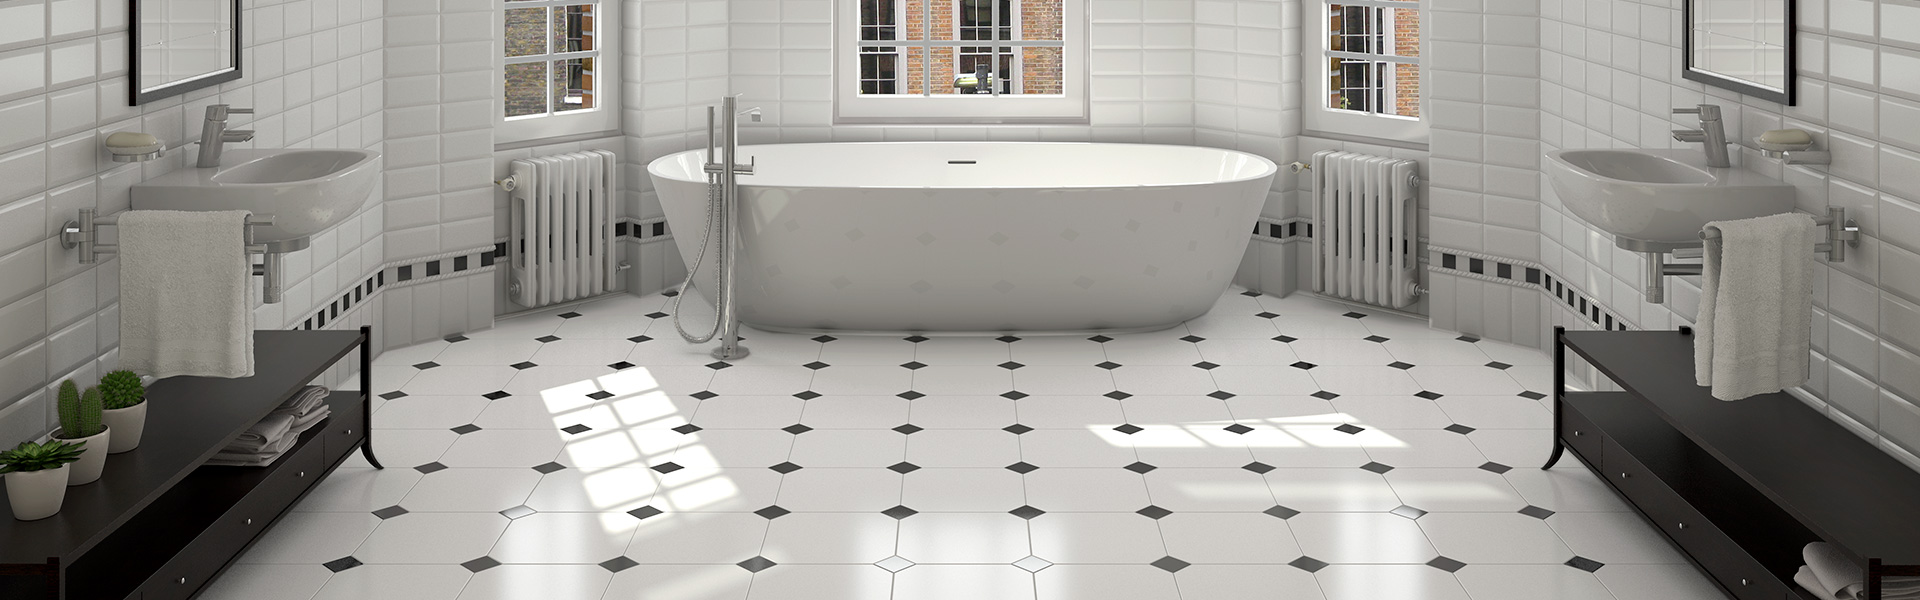 tiles floor bathroom vives carrelage gr 232 s p 226 te monocolor 14x28 14739